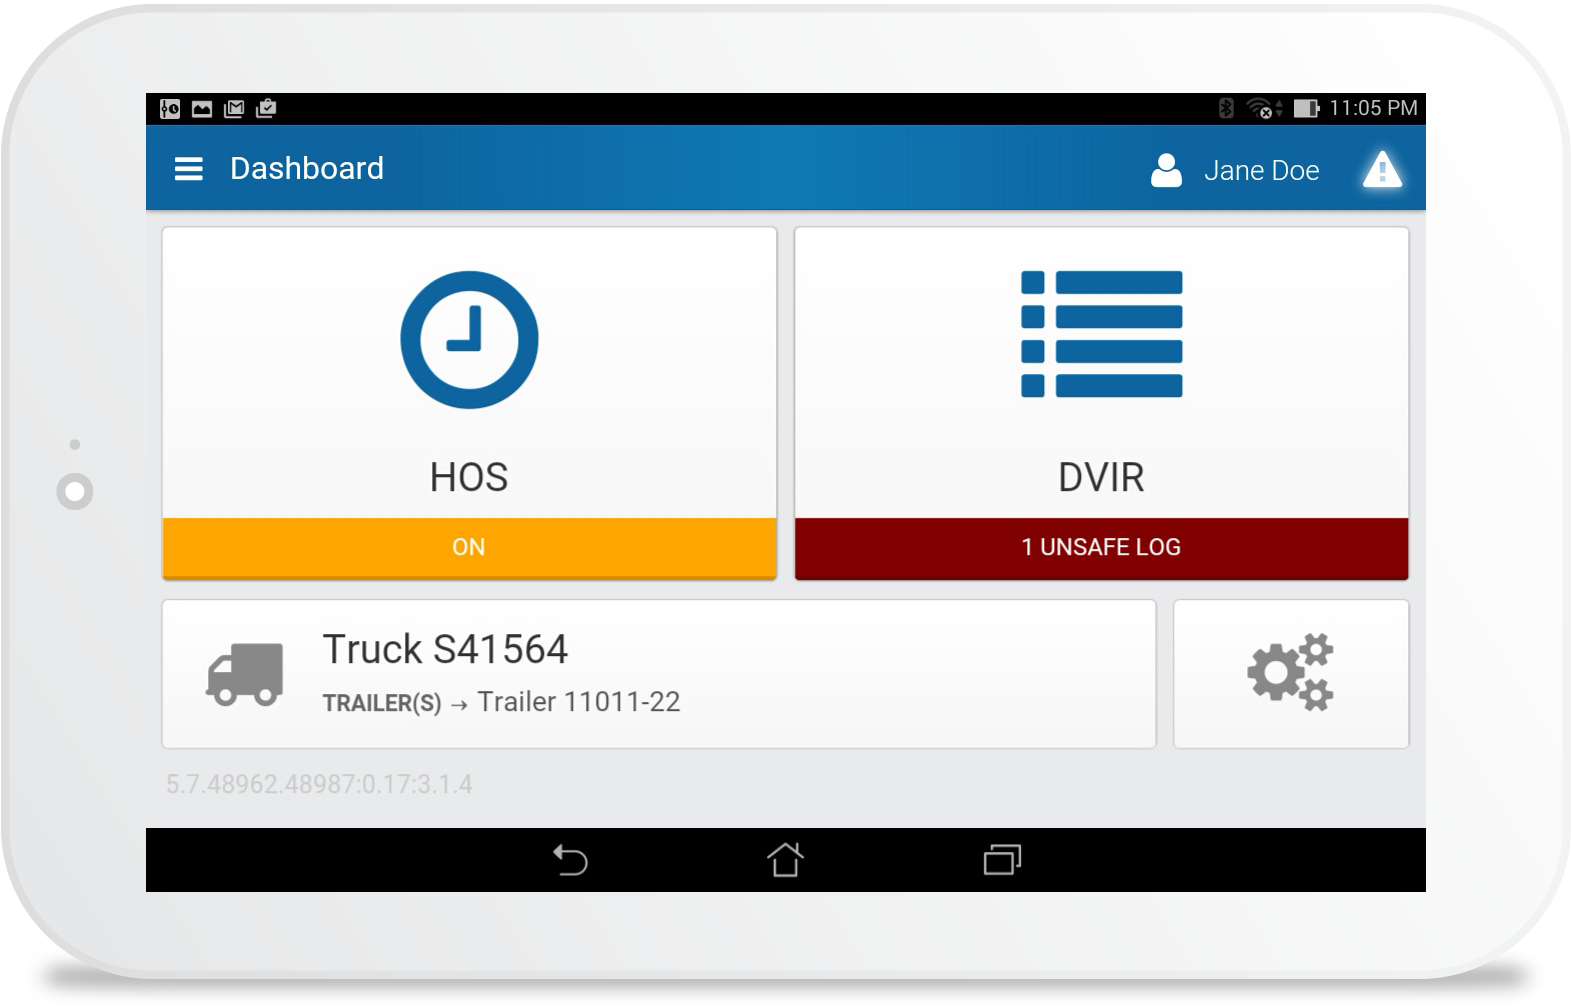 Driver vehicle inspection report (DVIR) on tablet